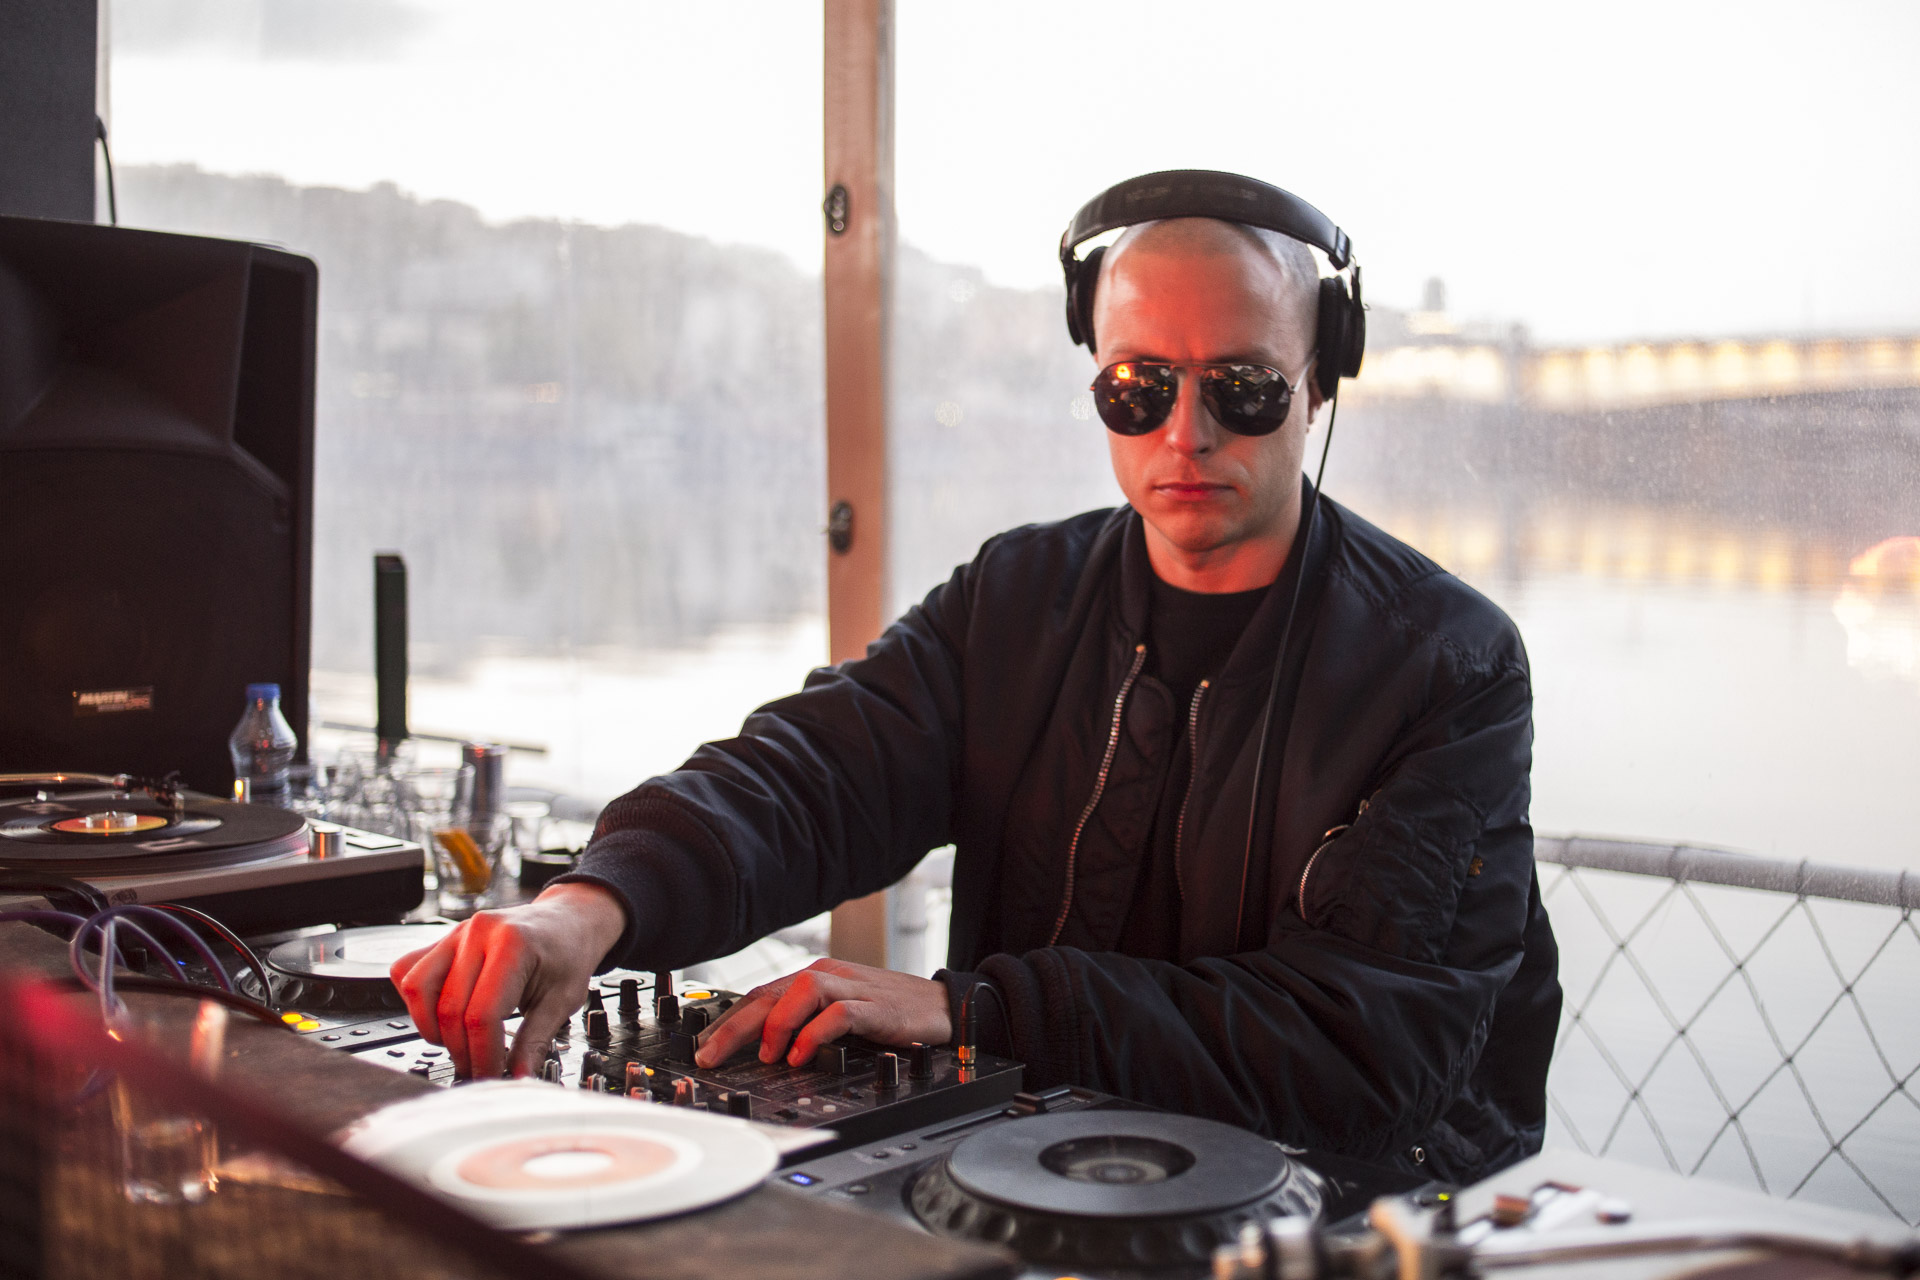 A finnish dj in 20/44. Millivoje, is excited by the new moment for the political opposition, due to the emerging role of Beli's party and even more by the daily protests in the streets.